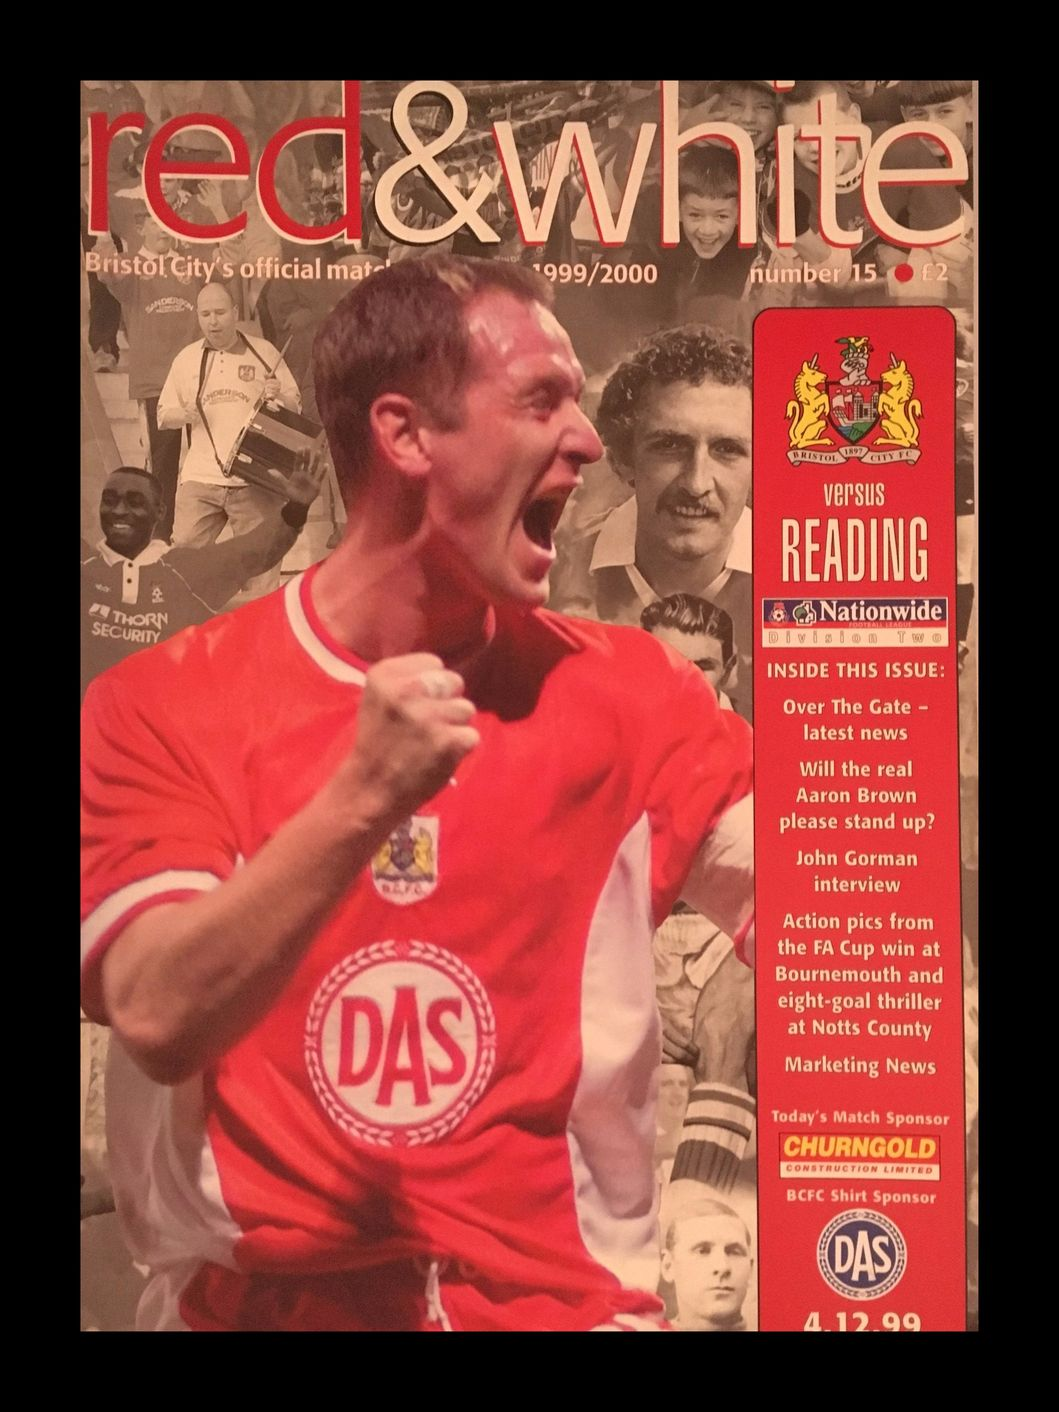 Bristol City v Reading 04-12-1999 Programme